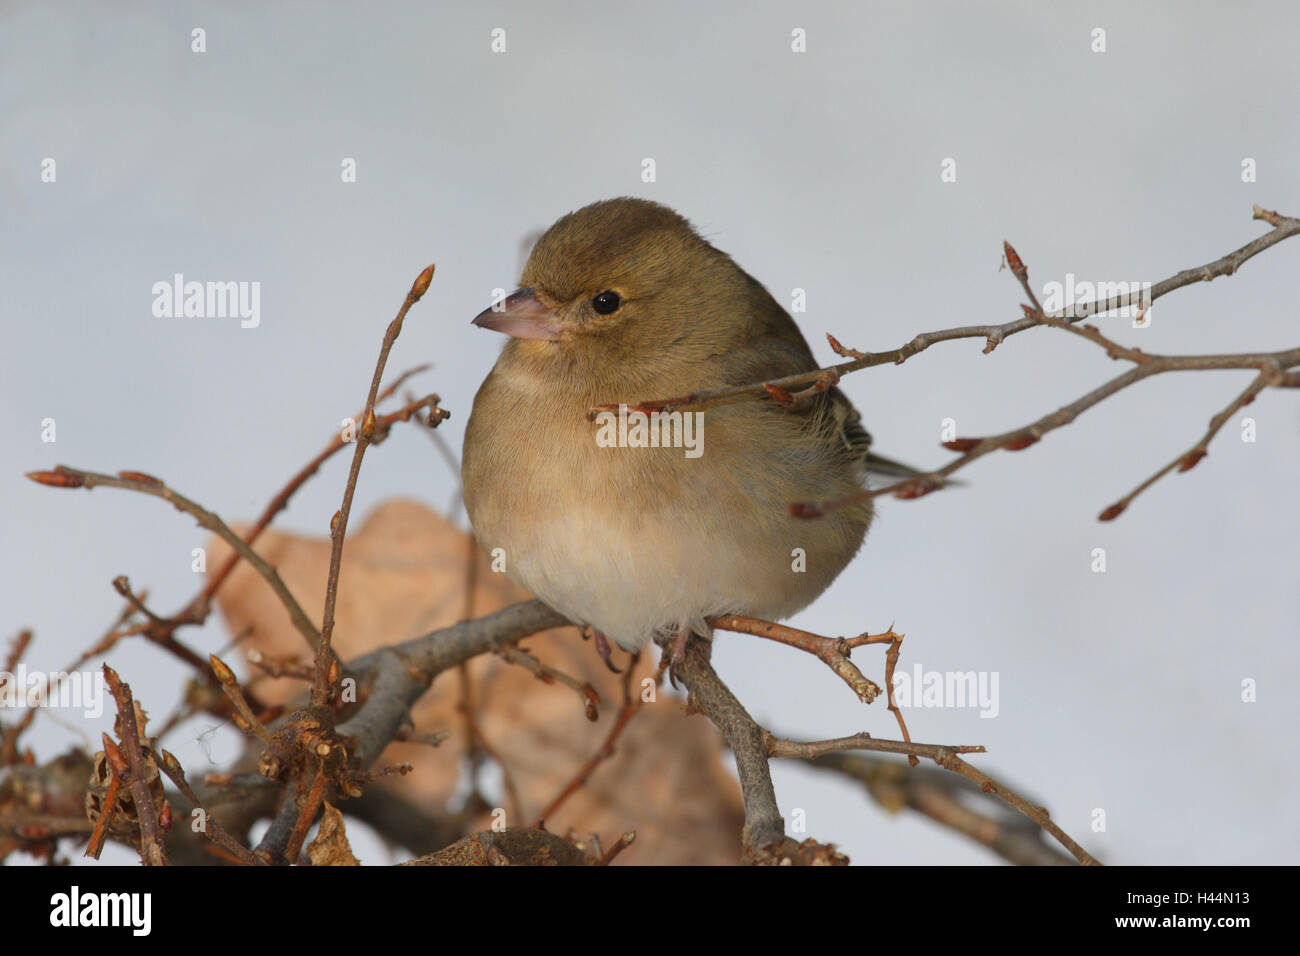 Chaffinch, branch, sit, side view, bird, songbird, finch, noble finch, sparrow's birds, winters, wild animal, - Stock Image